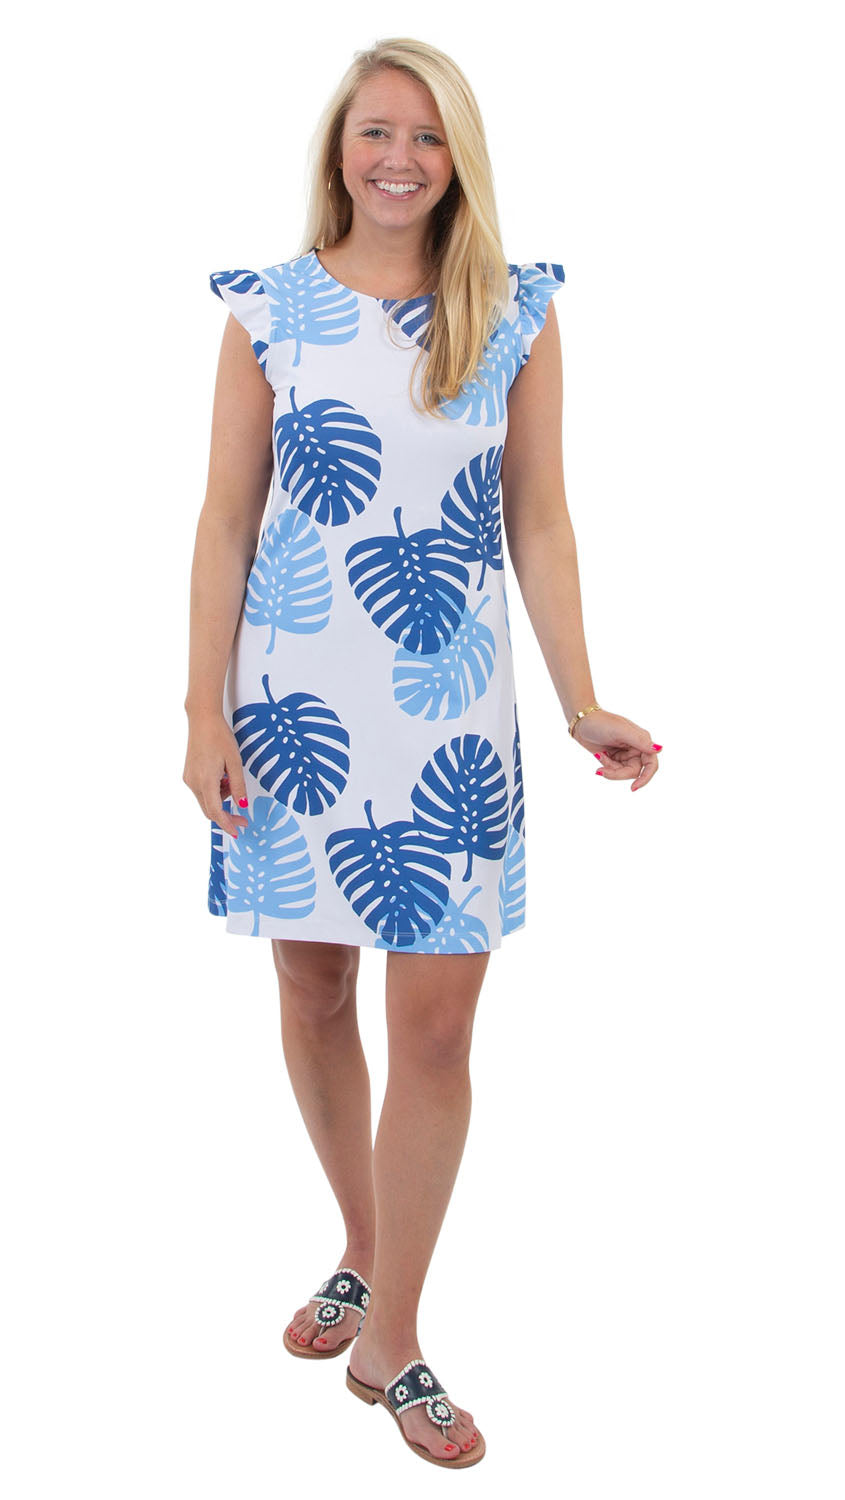 Jojo Dress - Blue Dancing Palms- SAMPLE FINAL SALE